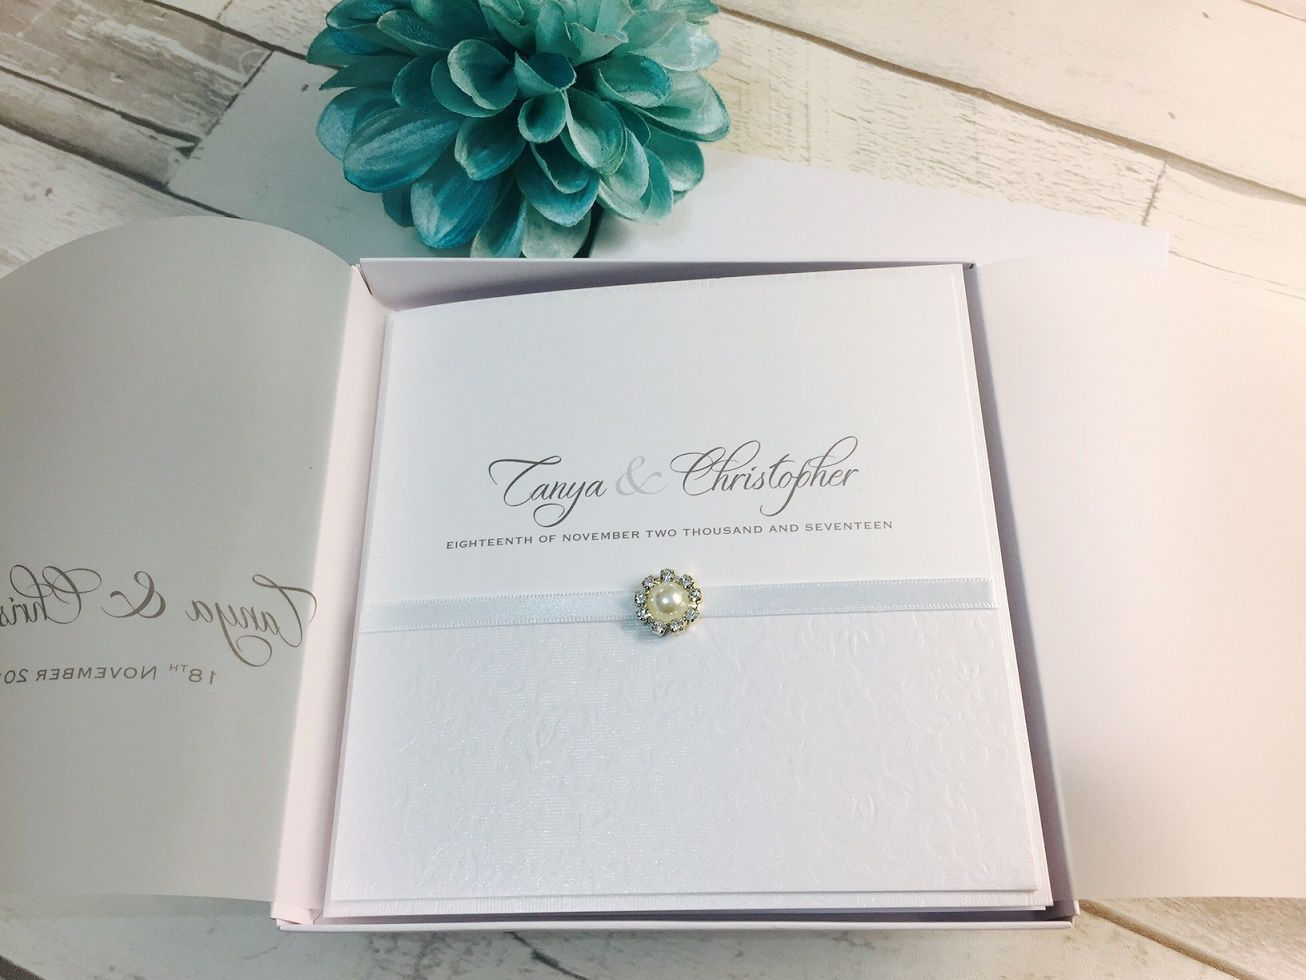 boxed wedding invitation with small round pearl on white embossed card